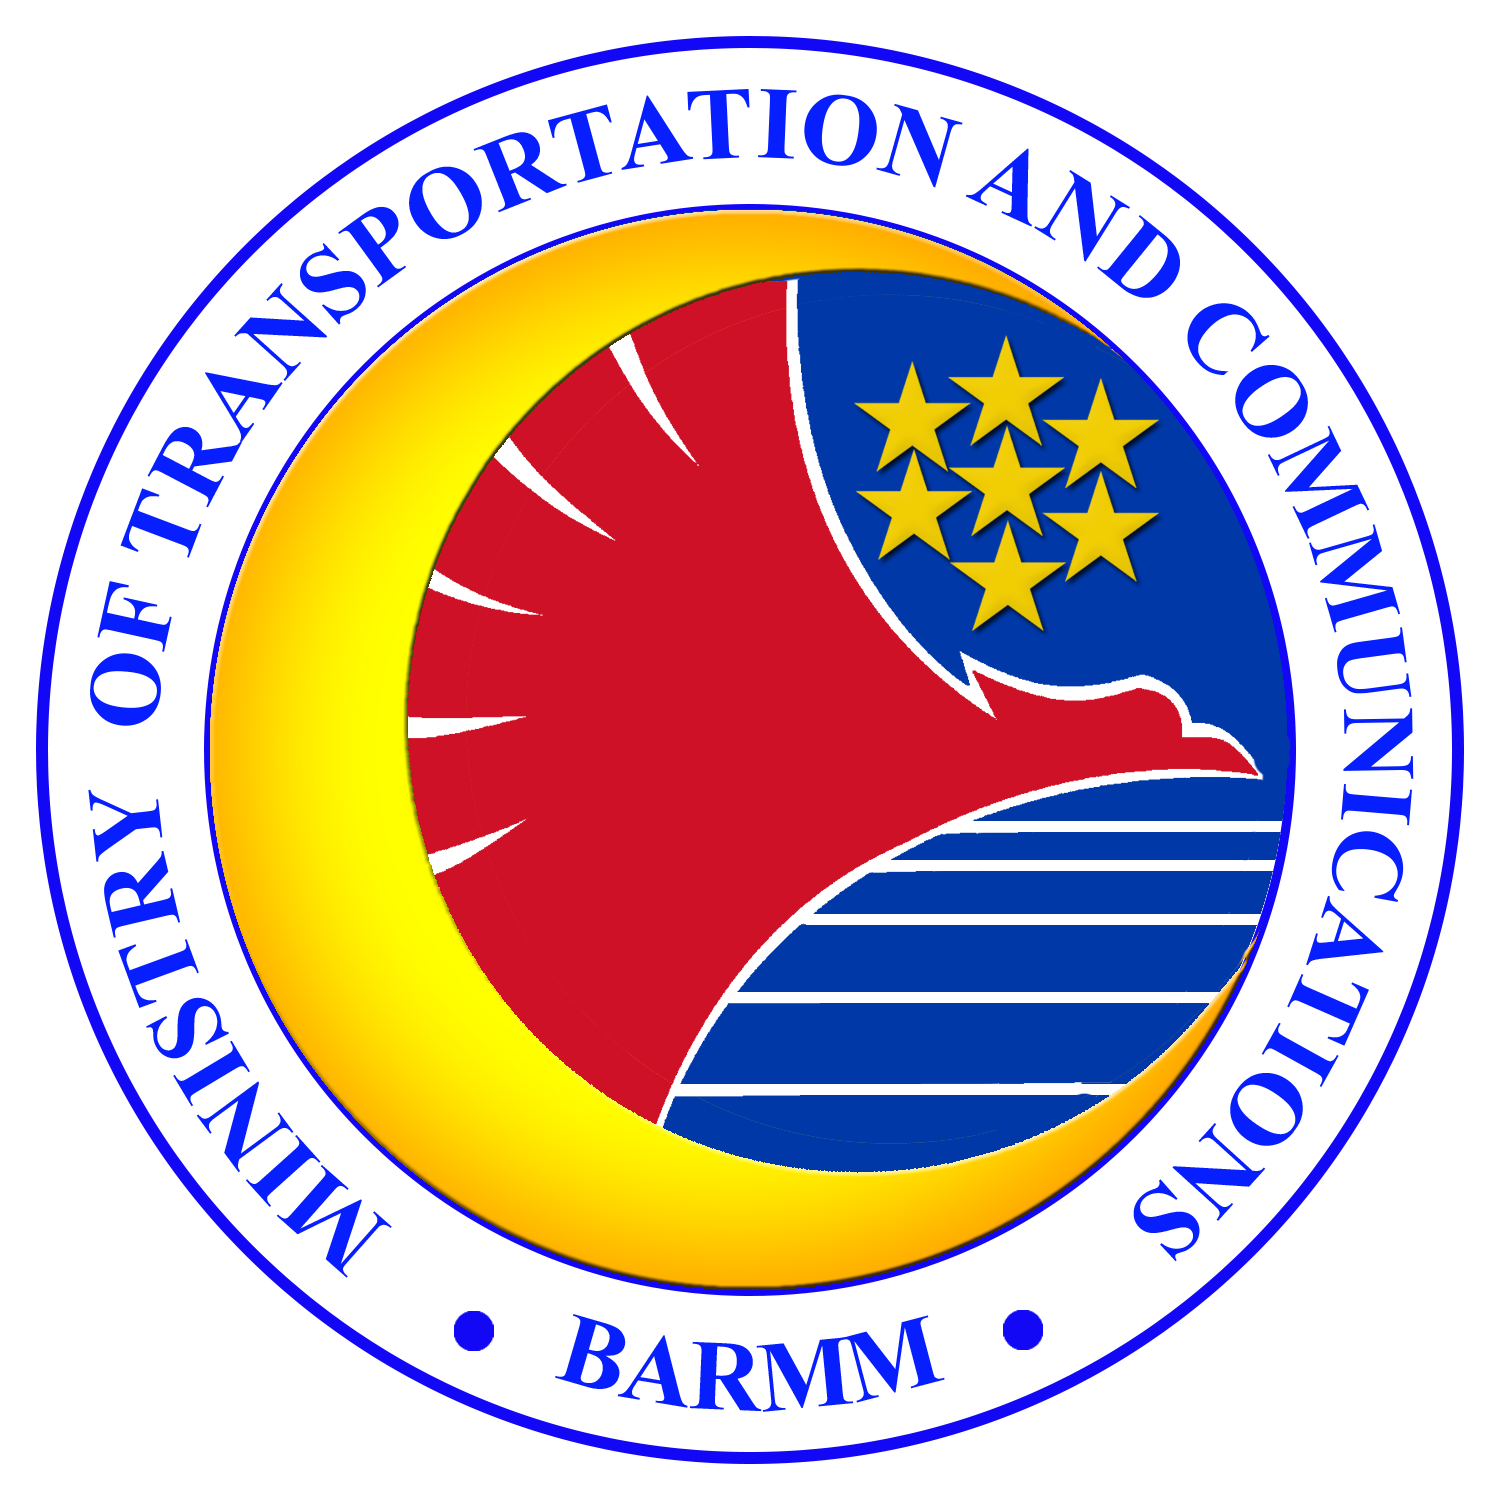 Ministry of Transportation and Communications Official Logo